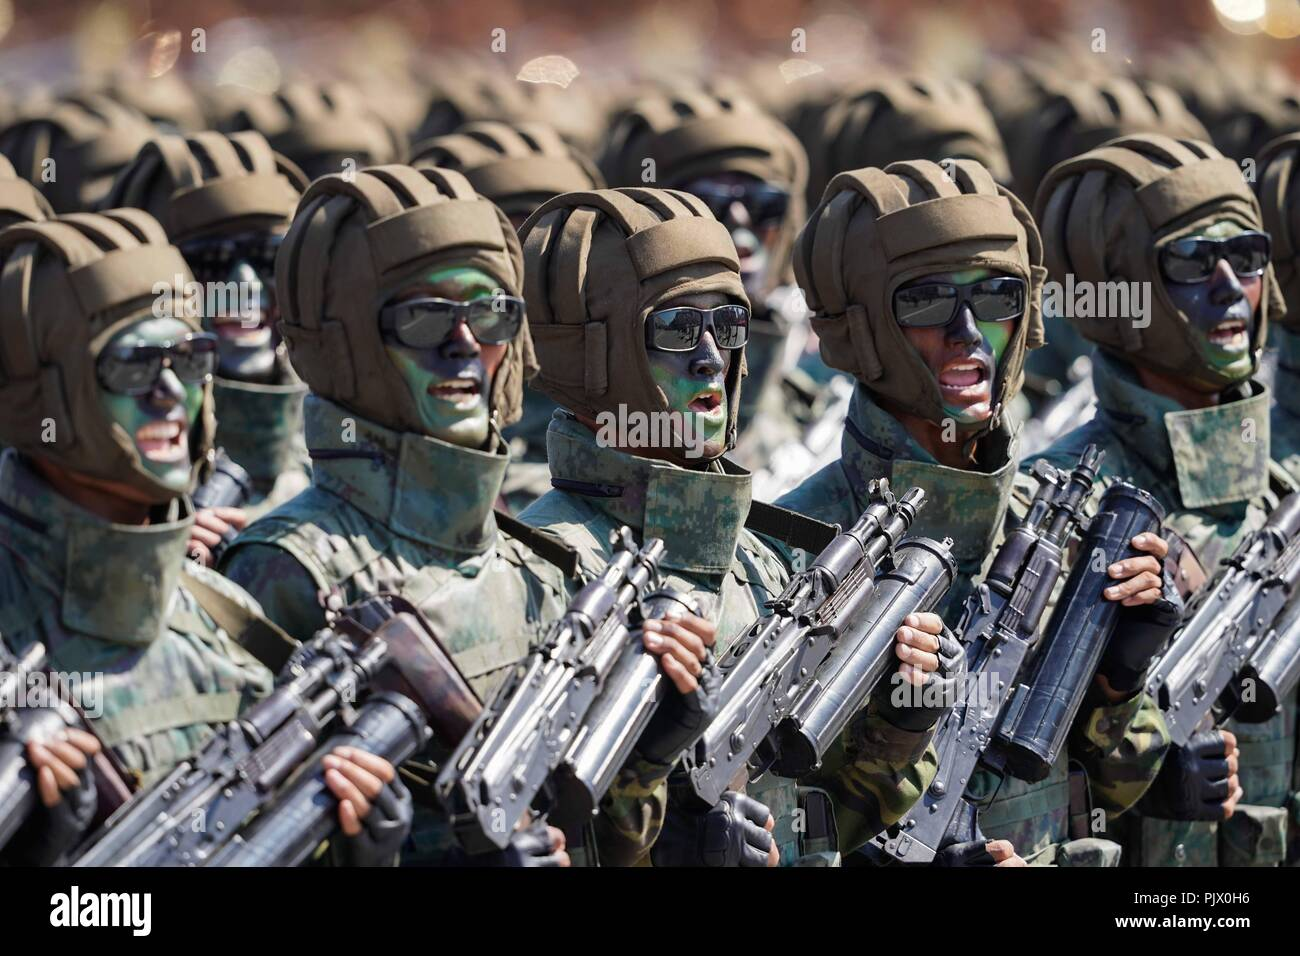 Pyongyang, DPRK. 9th Sep, 2018. Soldiers march during a parade to celebrate the 70th anniversary of the founding of the Democratic People's Republic of Korea (DPRK) in Pyongyang, DPRK, on Sept. 9, 2018. Credit: Xing Guangli/Xinhua/Alamy Live News - Stock Image